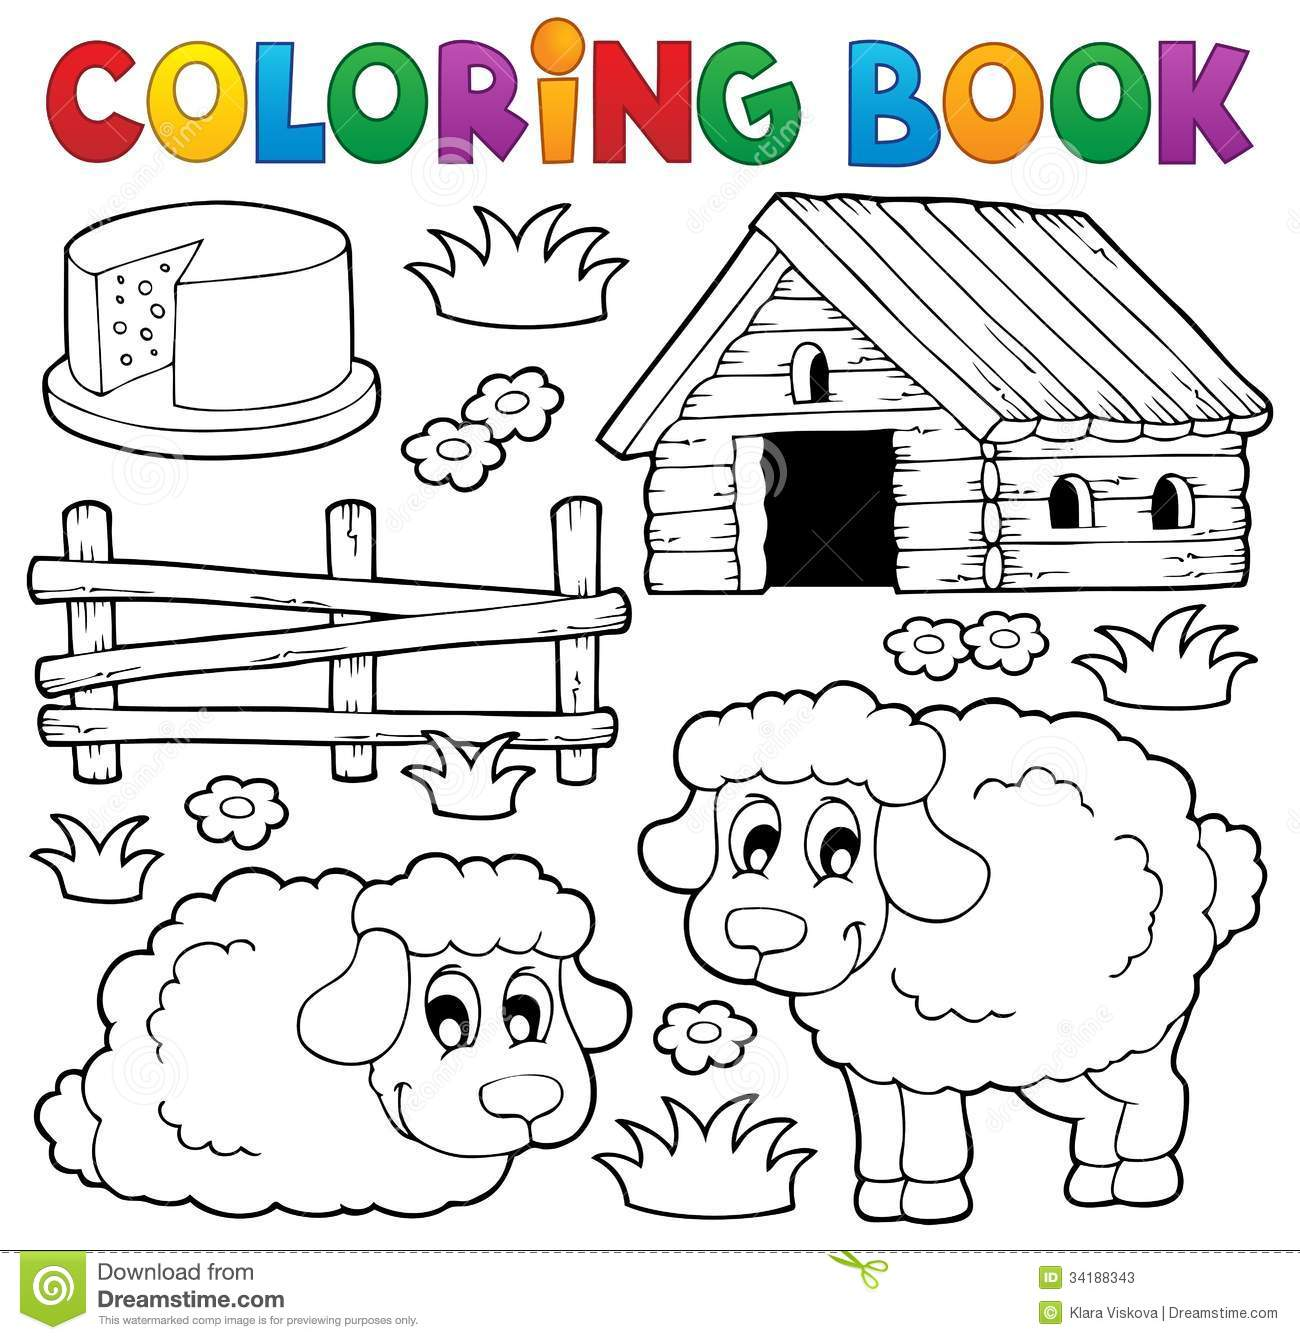 coloring pictures sheep : Coloring Book Sheep Theme 1